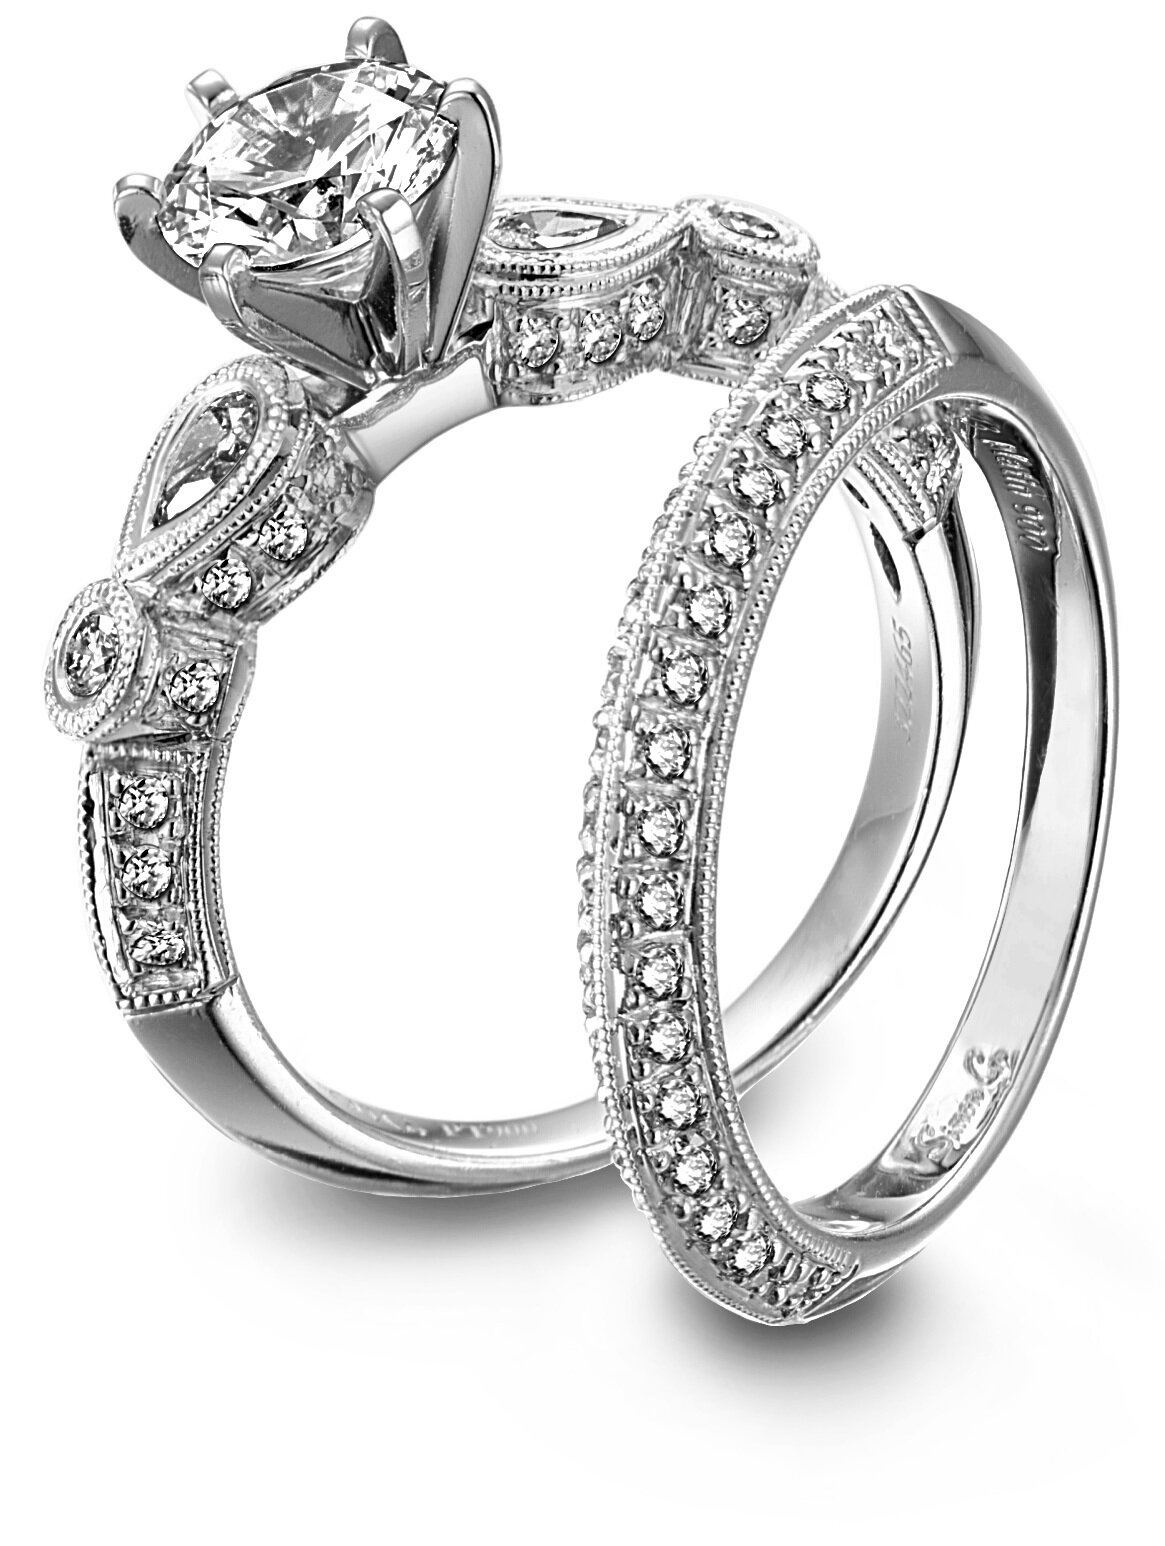 15 Examples Of Brilliant Wedding Rings  Mostbeautifulthings. Ridiculously Wedding Rings. Kid Rings. Wedding Dallas Wedding Rings. Plated Wedding Rings. Celtic Scottish Engagement Rings. Shop Wedding Rings. Kate Middleton Engagement Rings. Sandblasted Rings